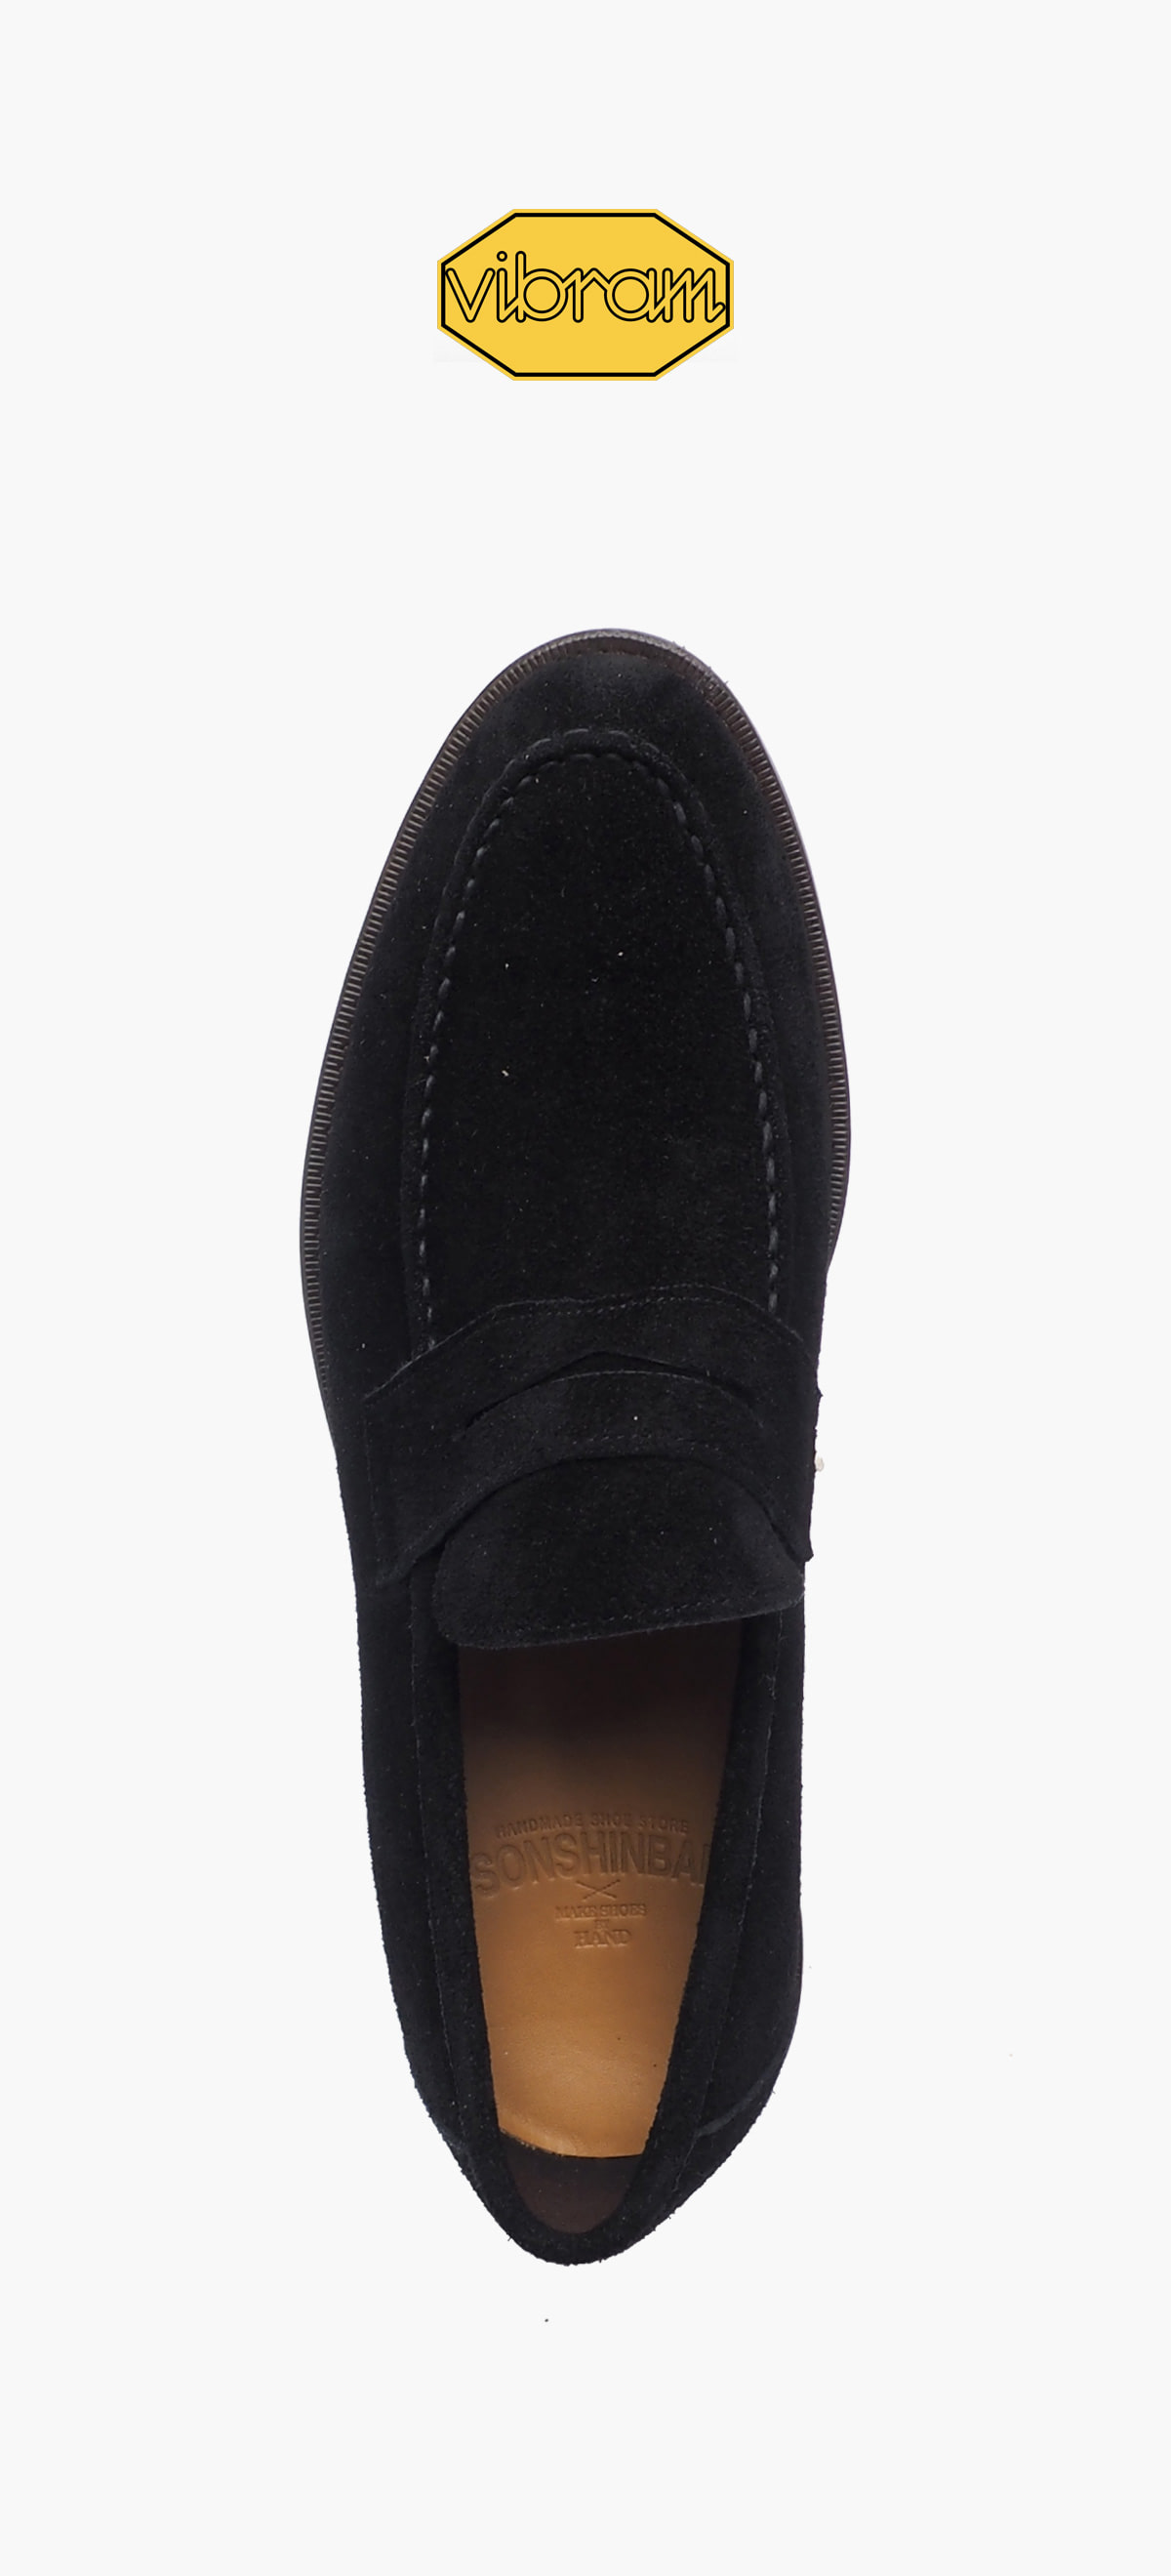 Penny Loafer 2028-15 Black Suede